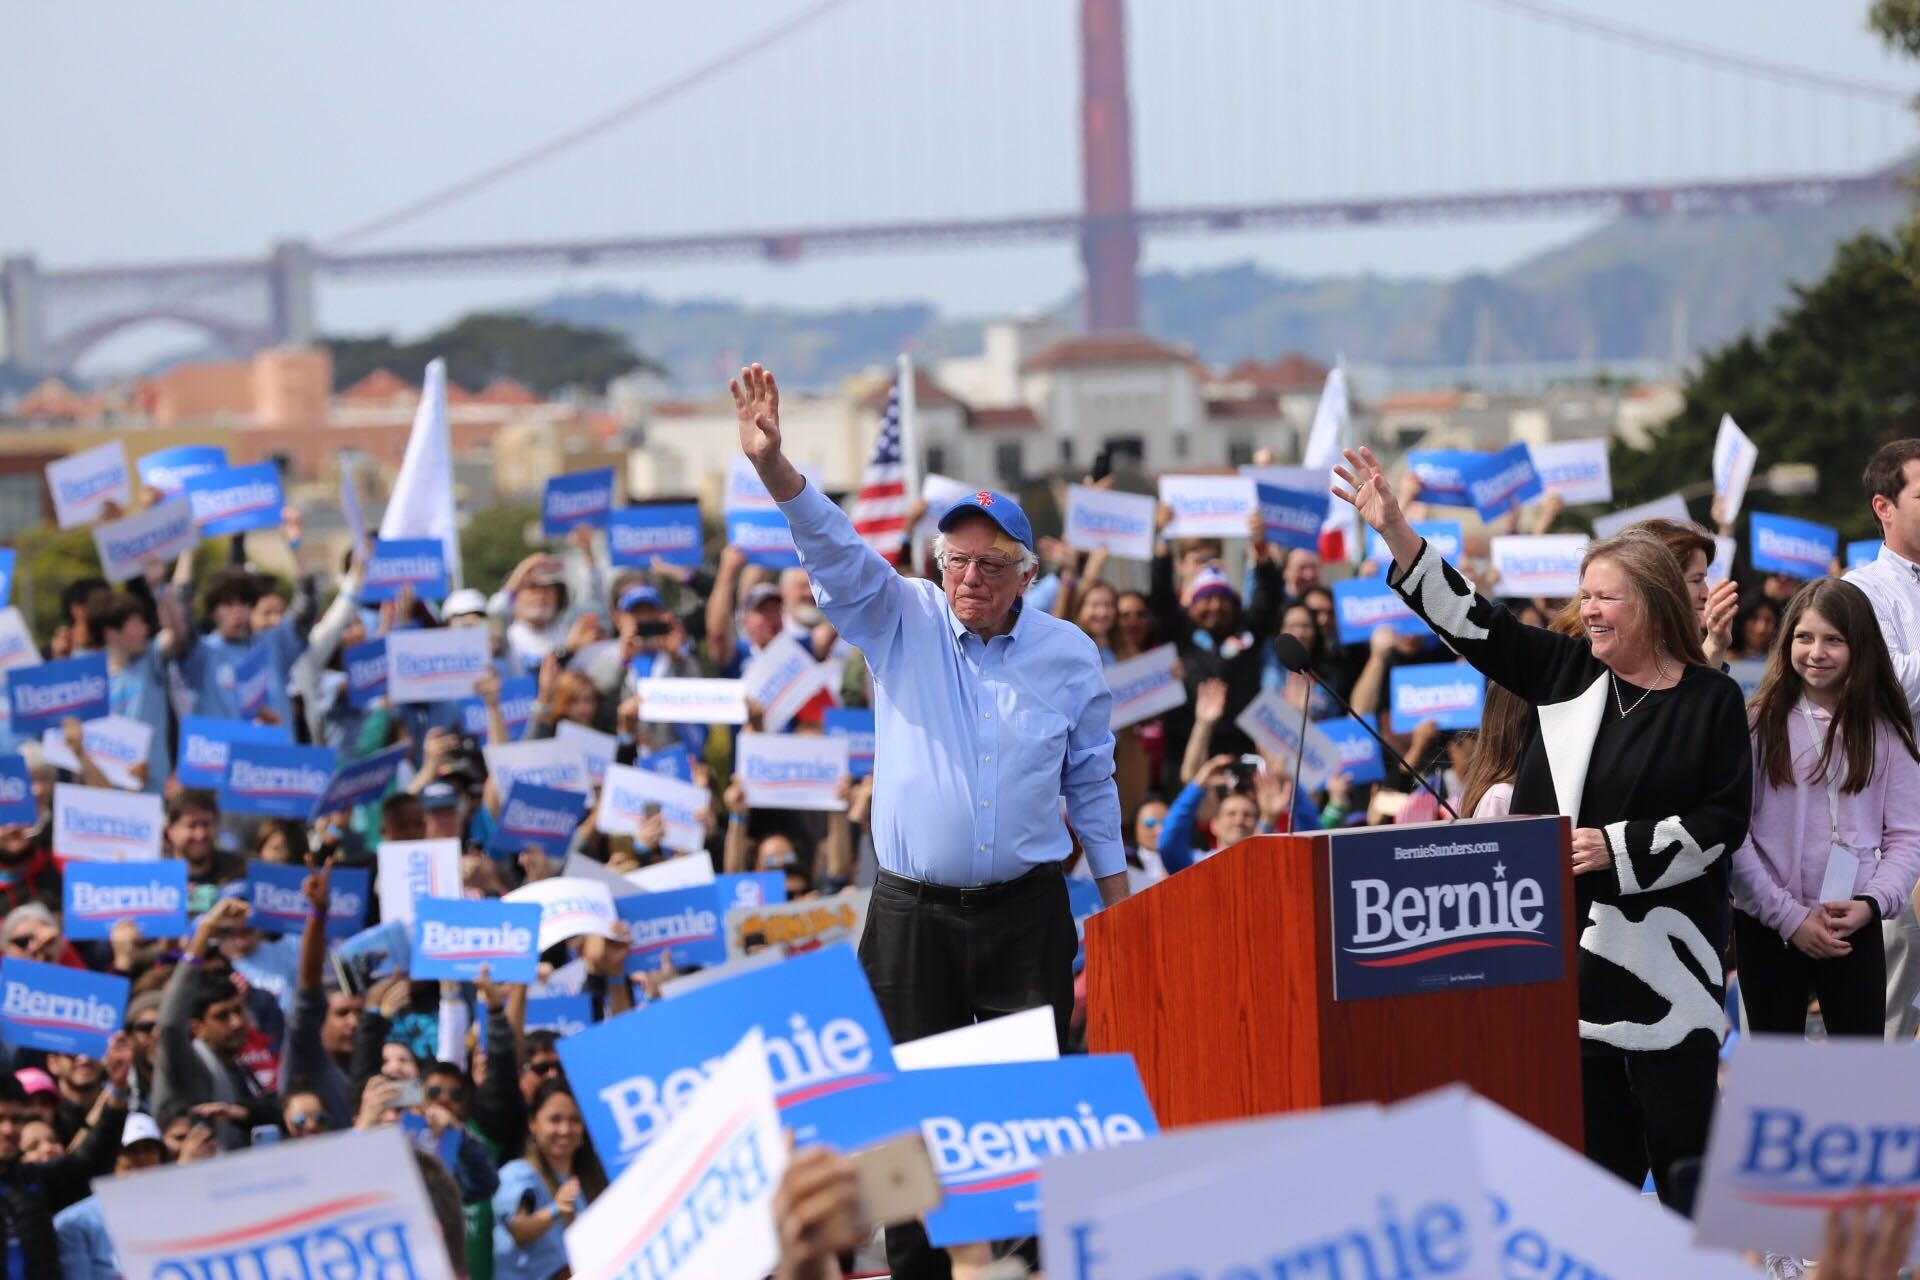 PHOTOS: Thousands Welcome Bernie Sanders to San Francisco in Second Run for President